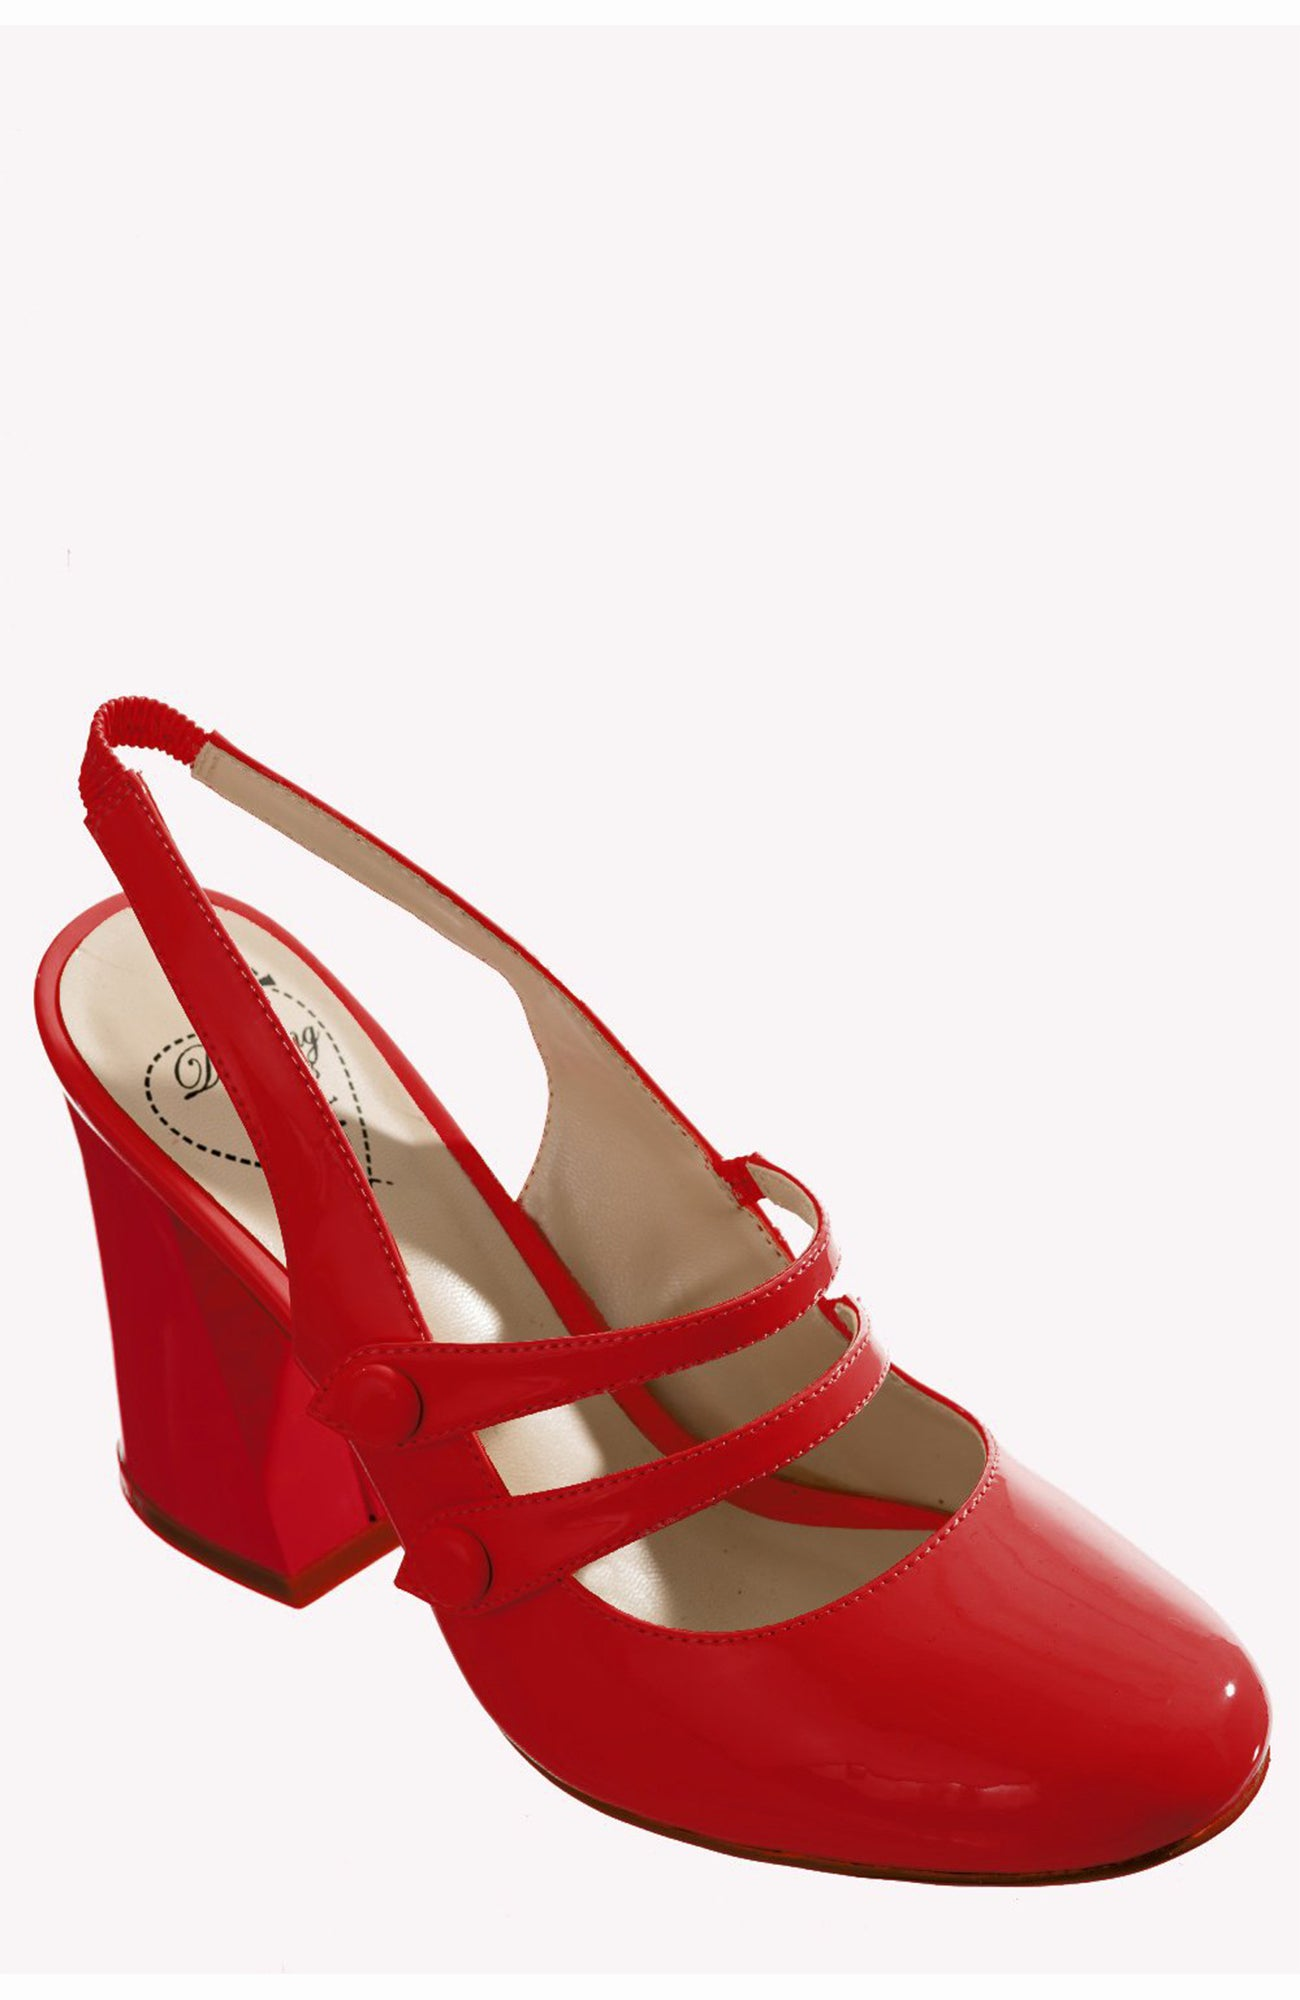 Red Patent Heel ~ Banned